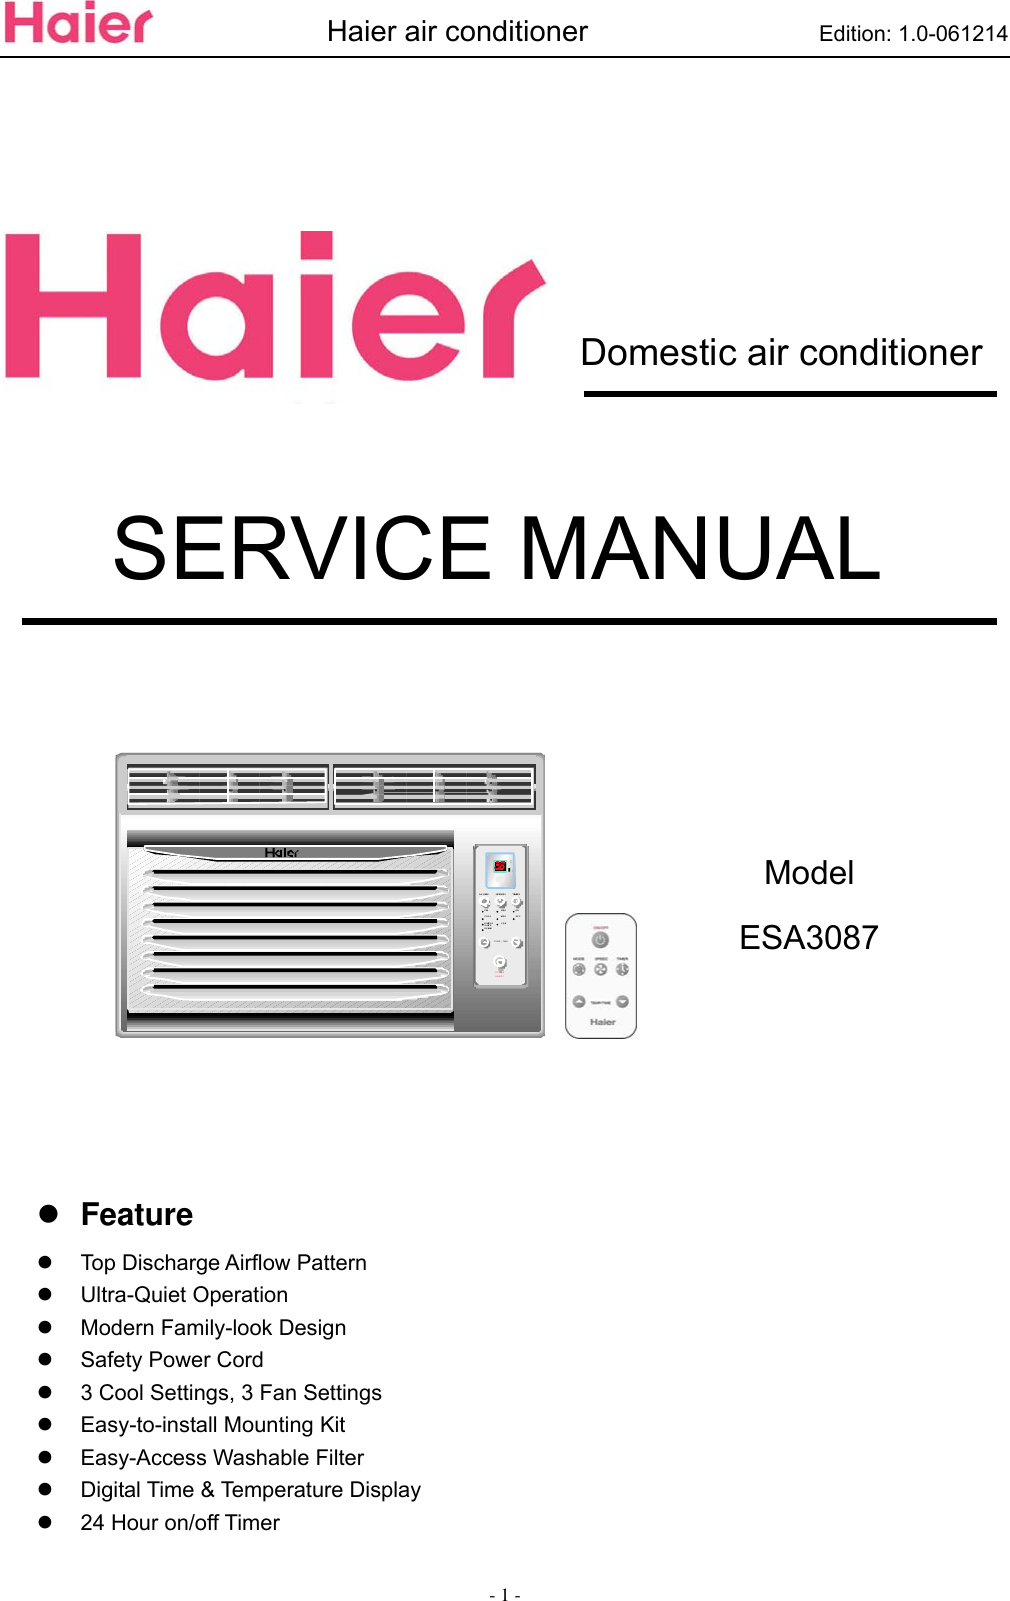 Haier Air Conditioner Esa3087 Users Manual ESA3067 SM_06 11 30_ on haier appliance wiring diagrams, haier heat pump wiring diagrams, haier refrigerator wiring diagram,